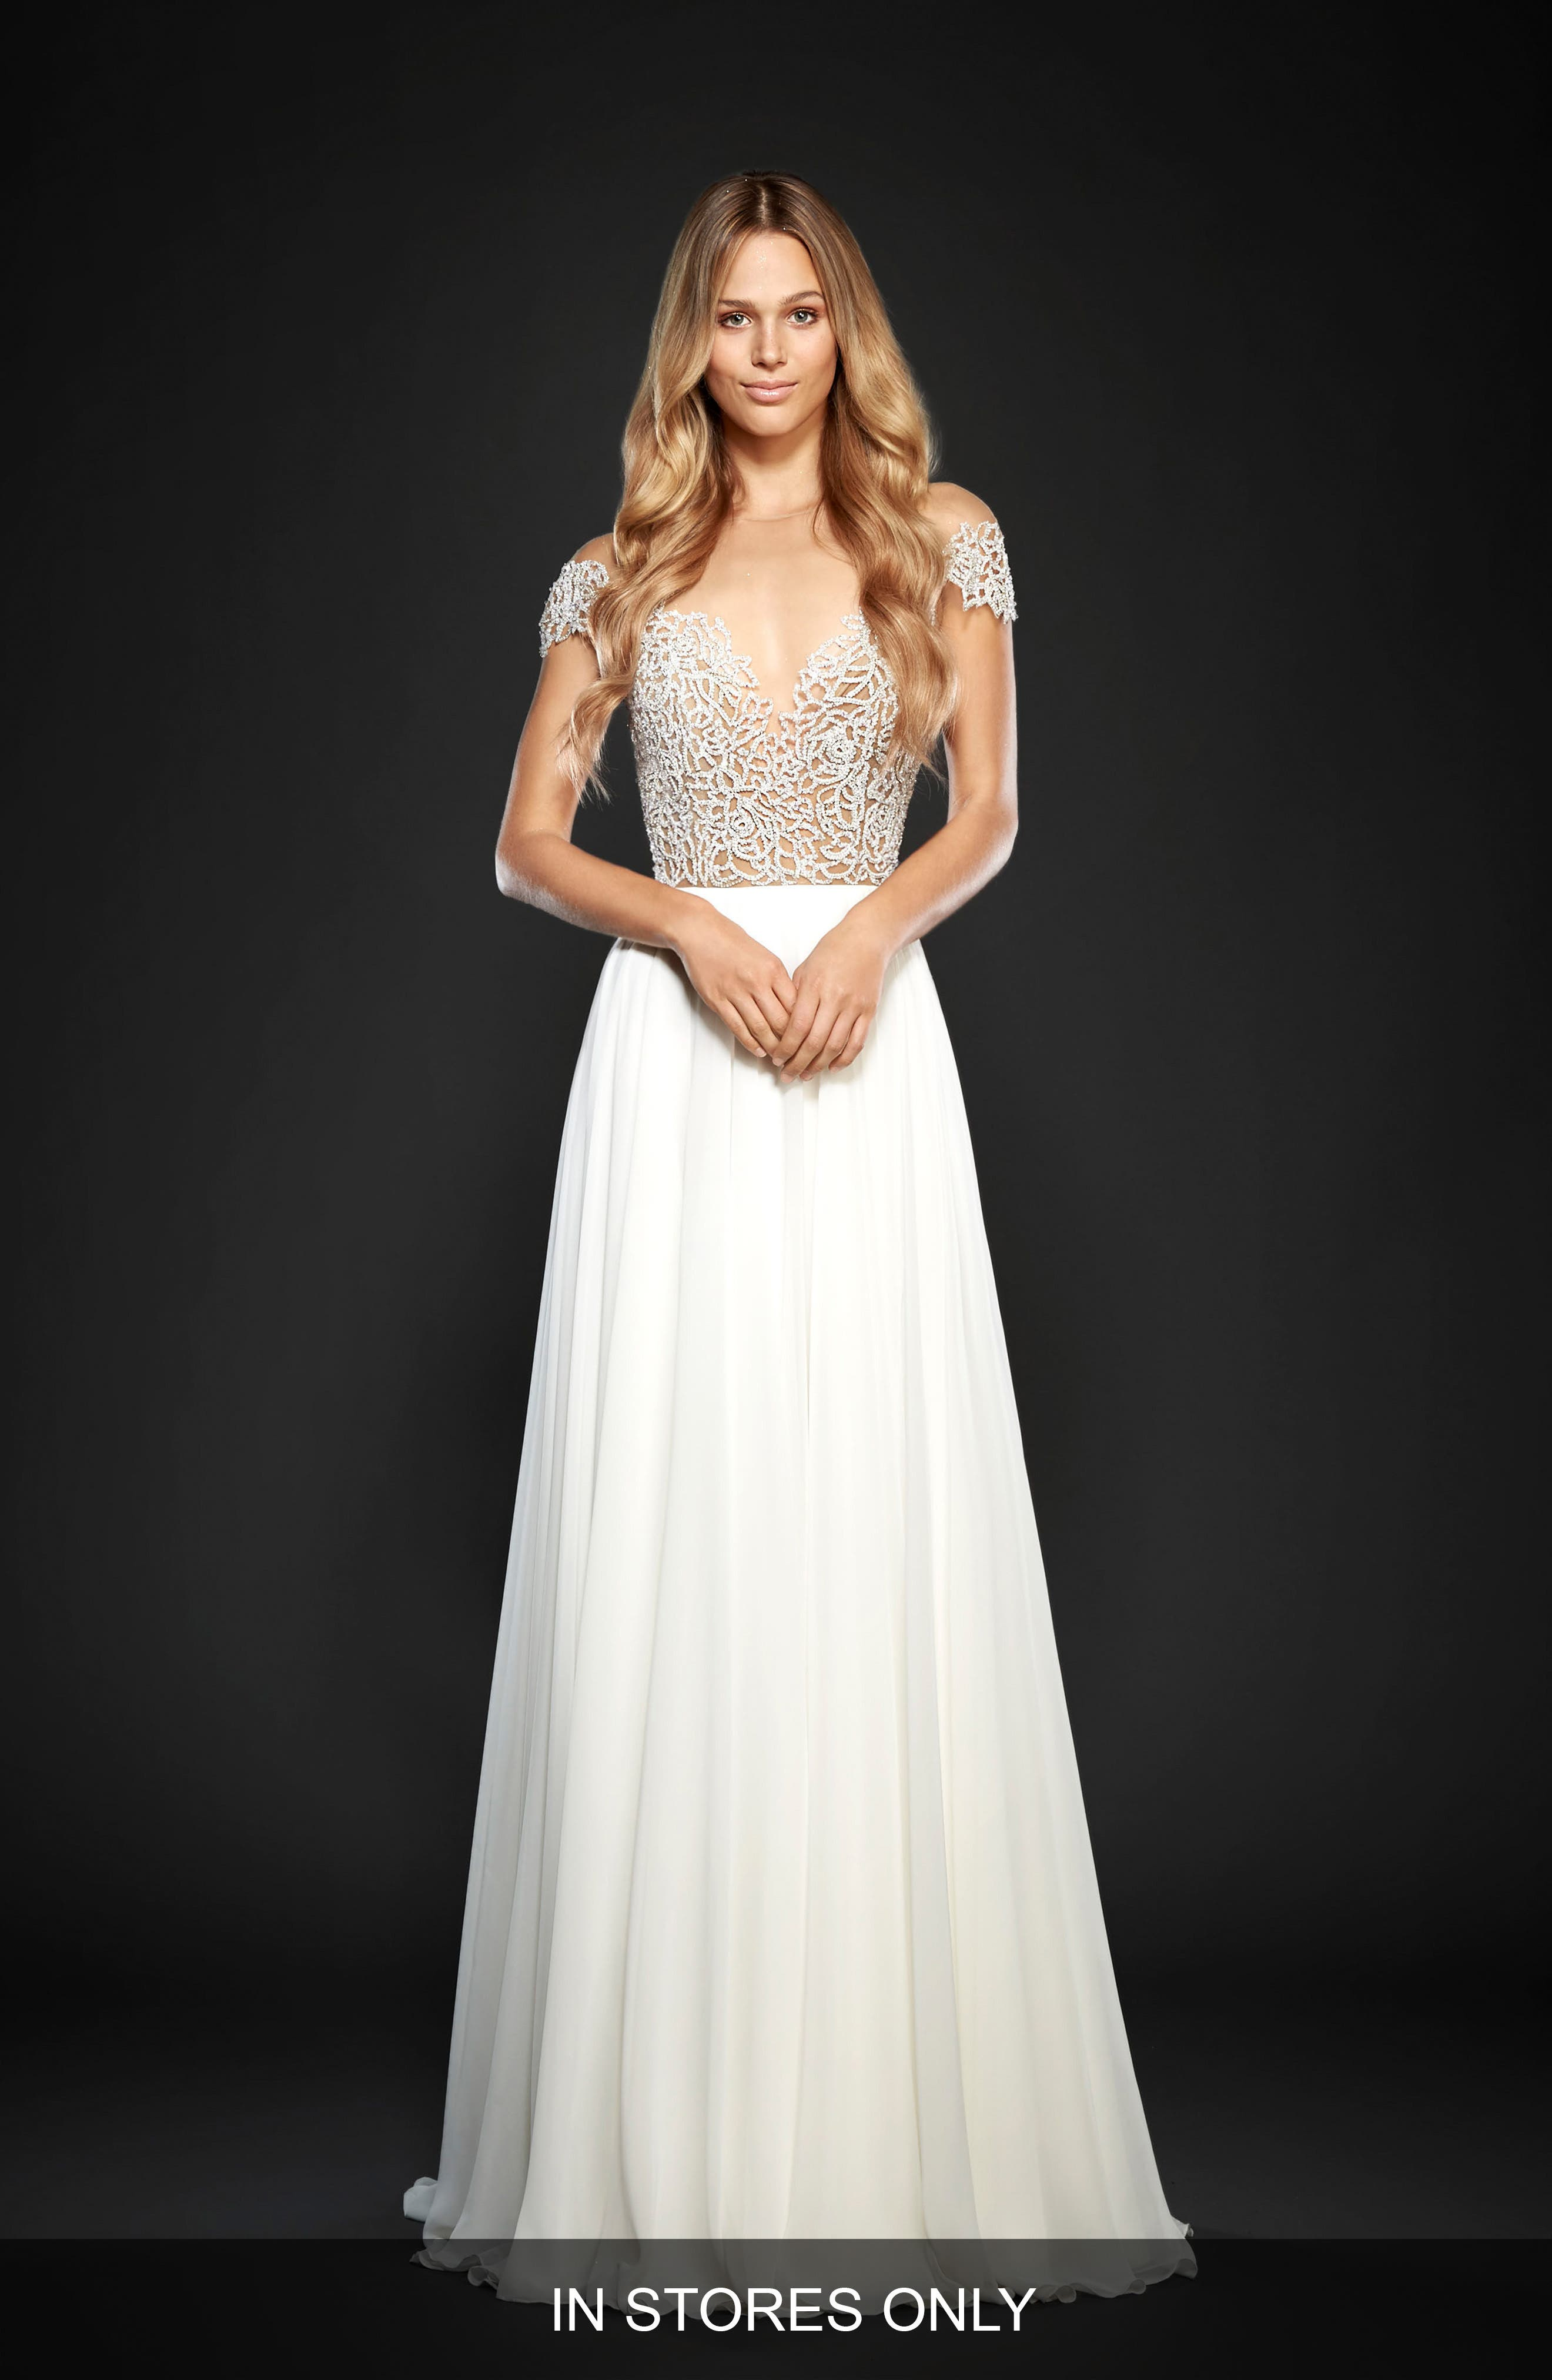 Hayley Paige Celine Embellished Illusion & Chiffon A-Line Gown (In Stores Only)